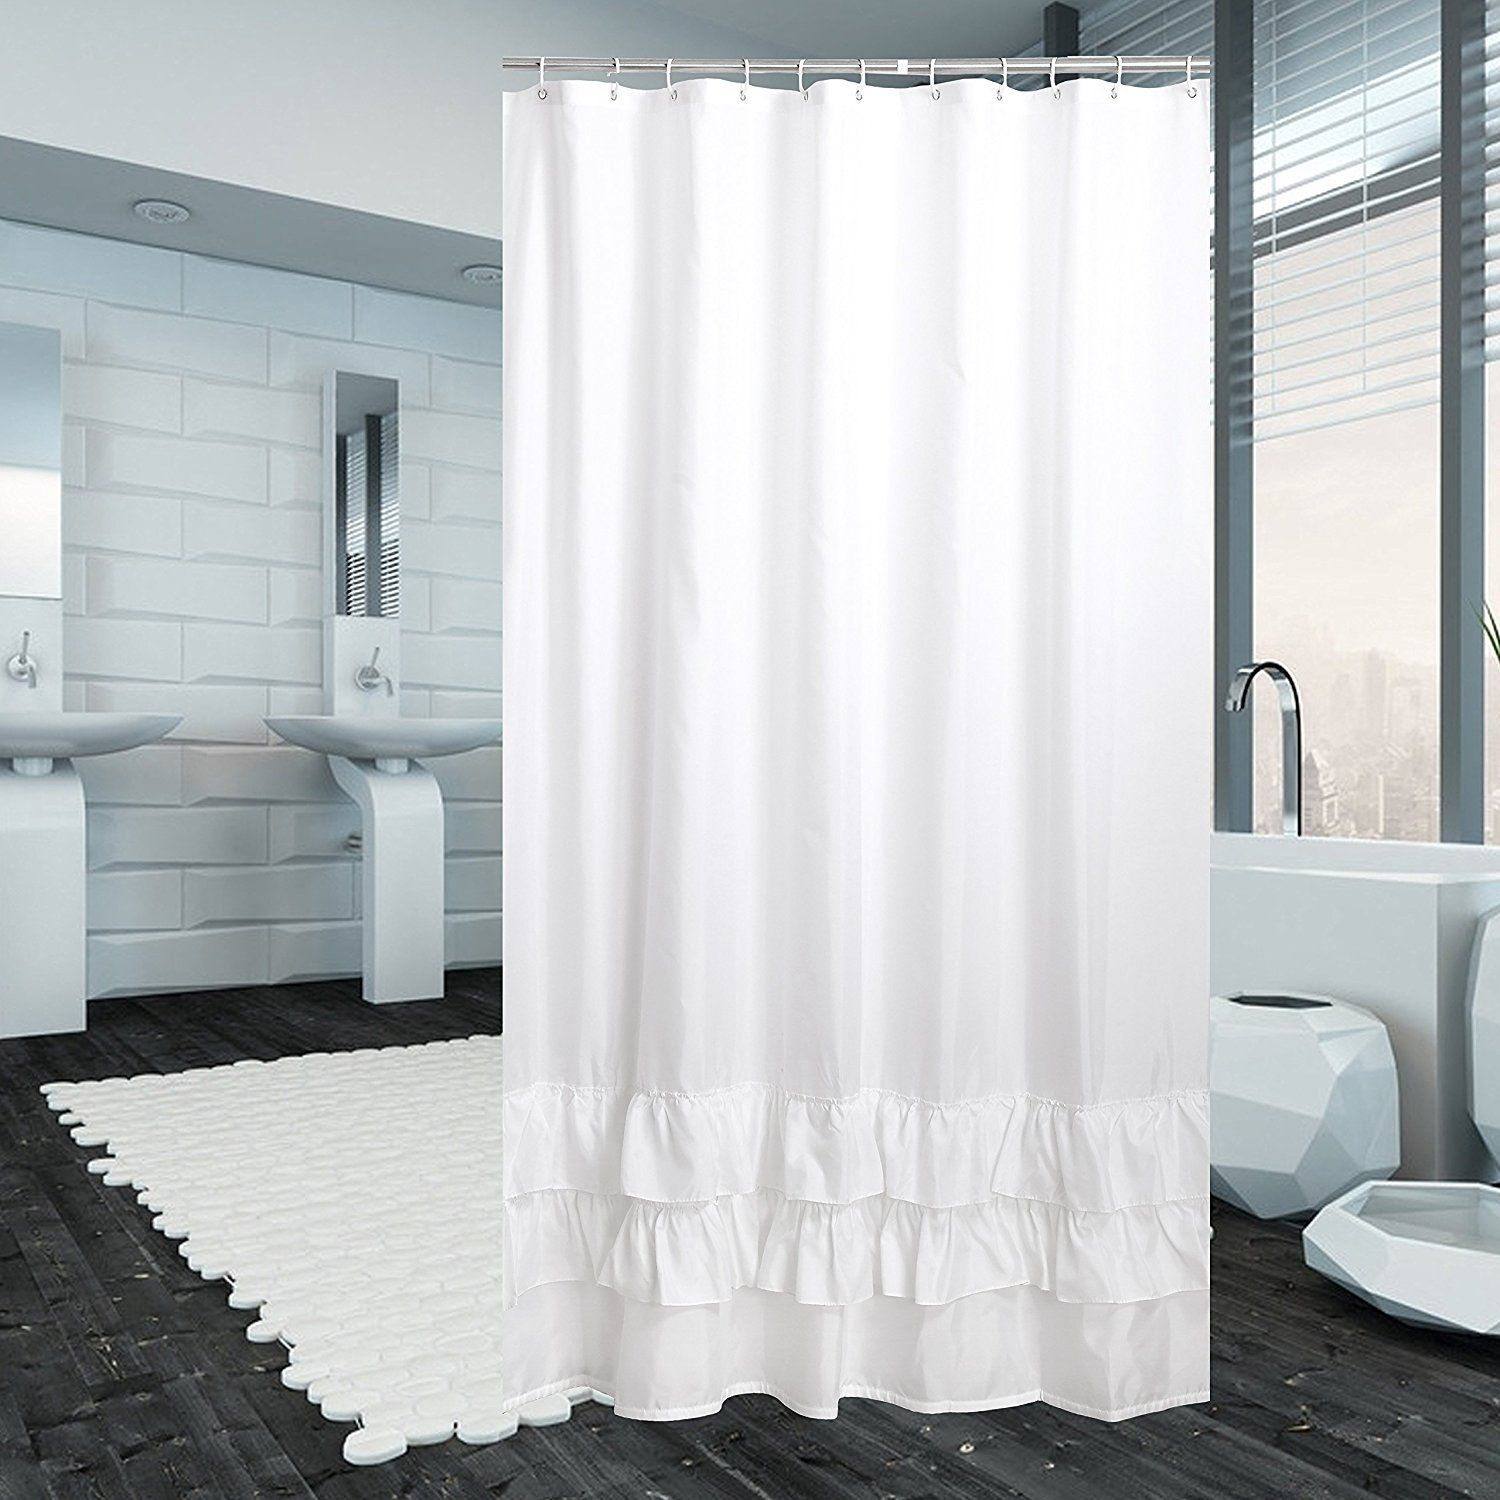 Luunaa Extra Thicken Premium Quality Ruffle Shower Curtain